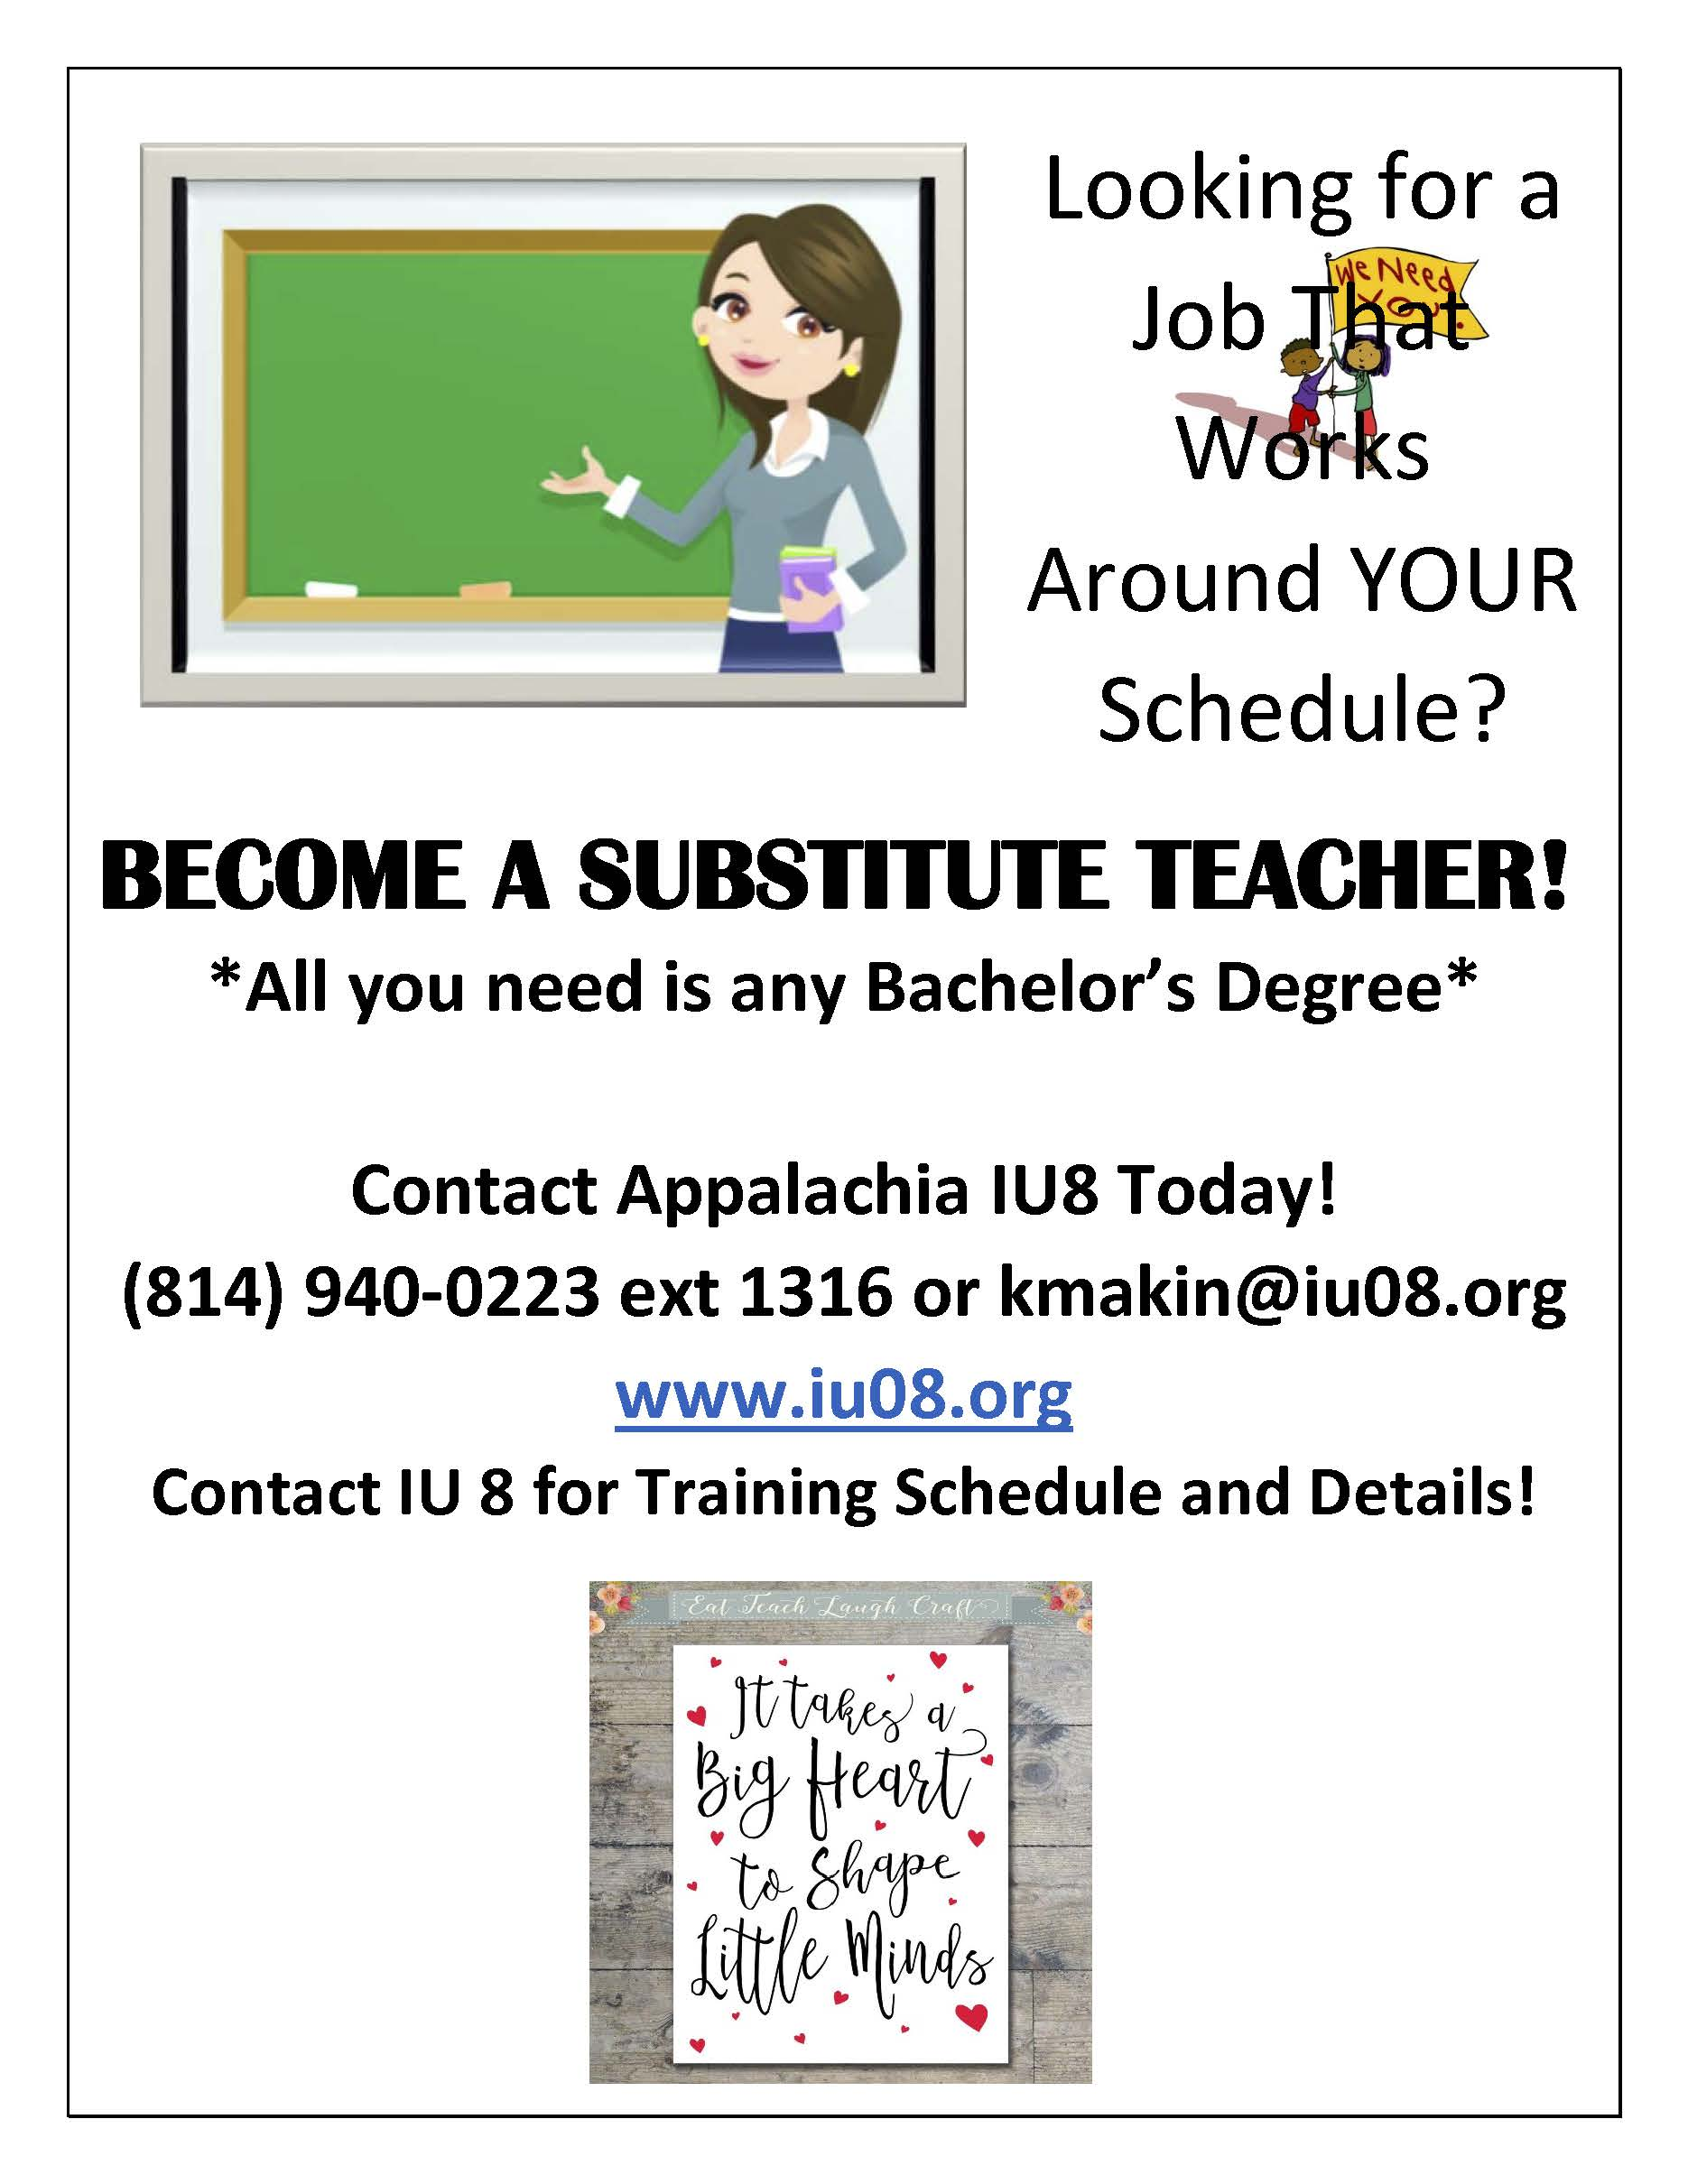 flyer with information about becoming a substitute teacher